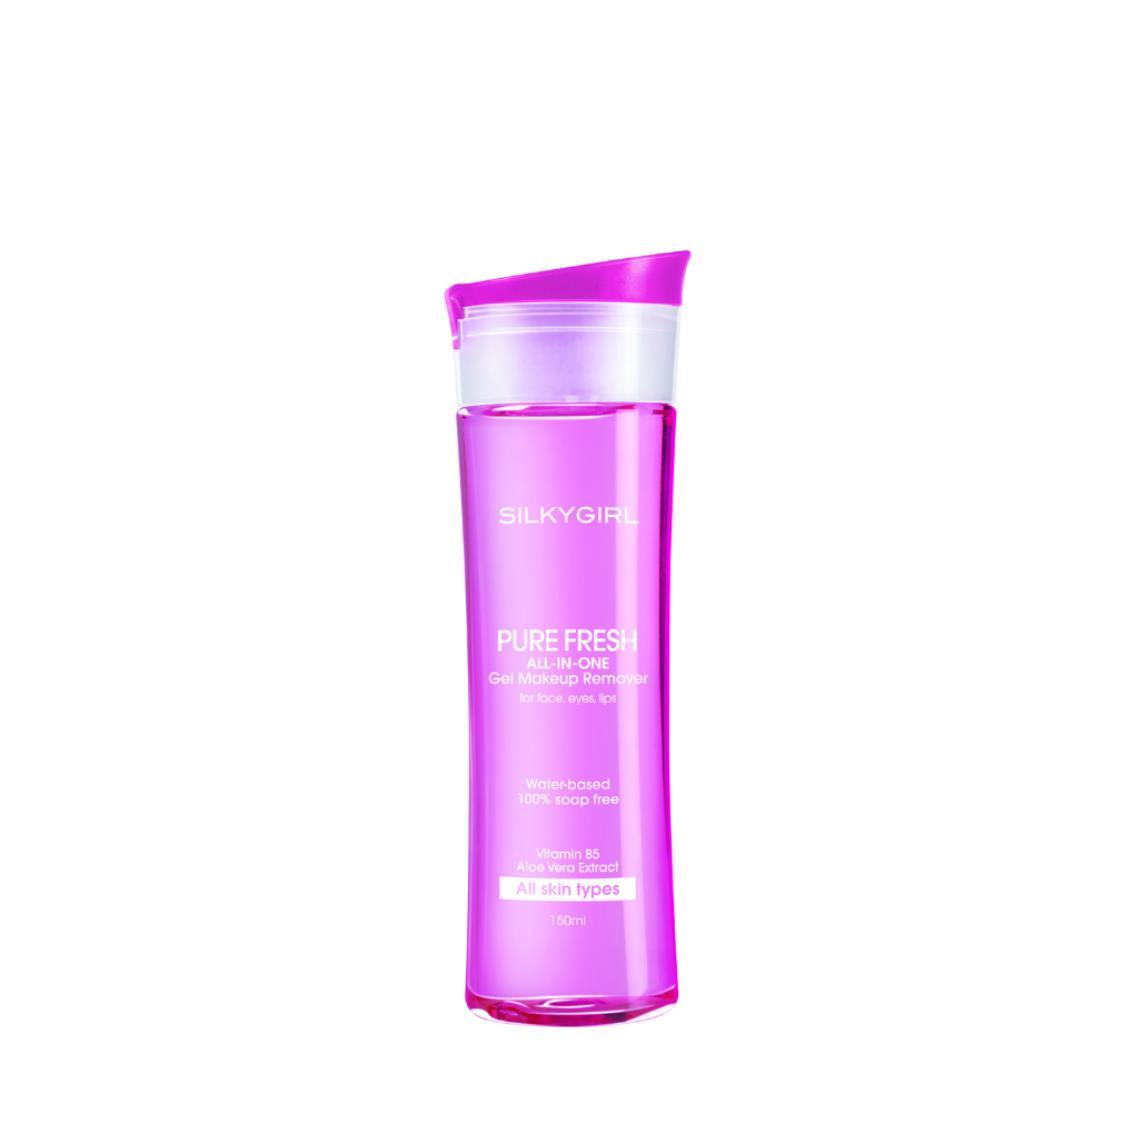 Pure Fresh Gel Makeup Remover